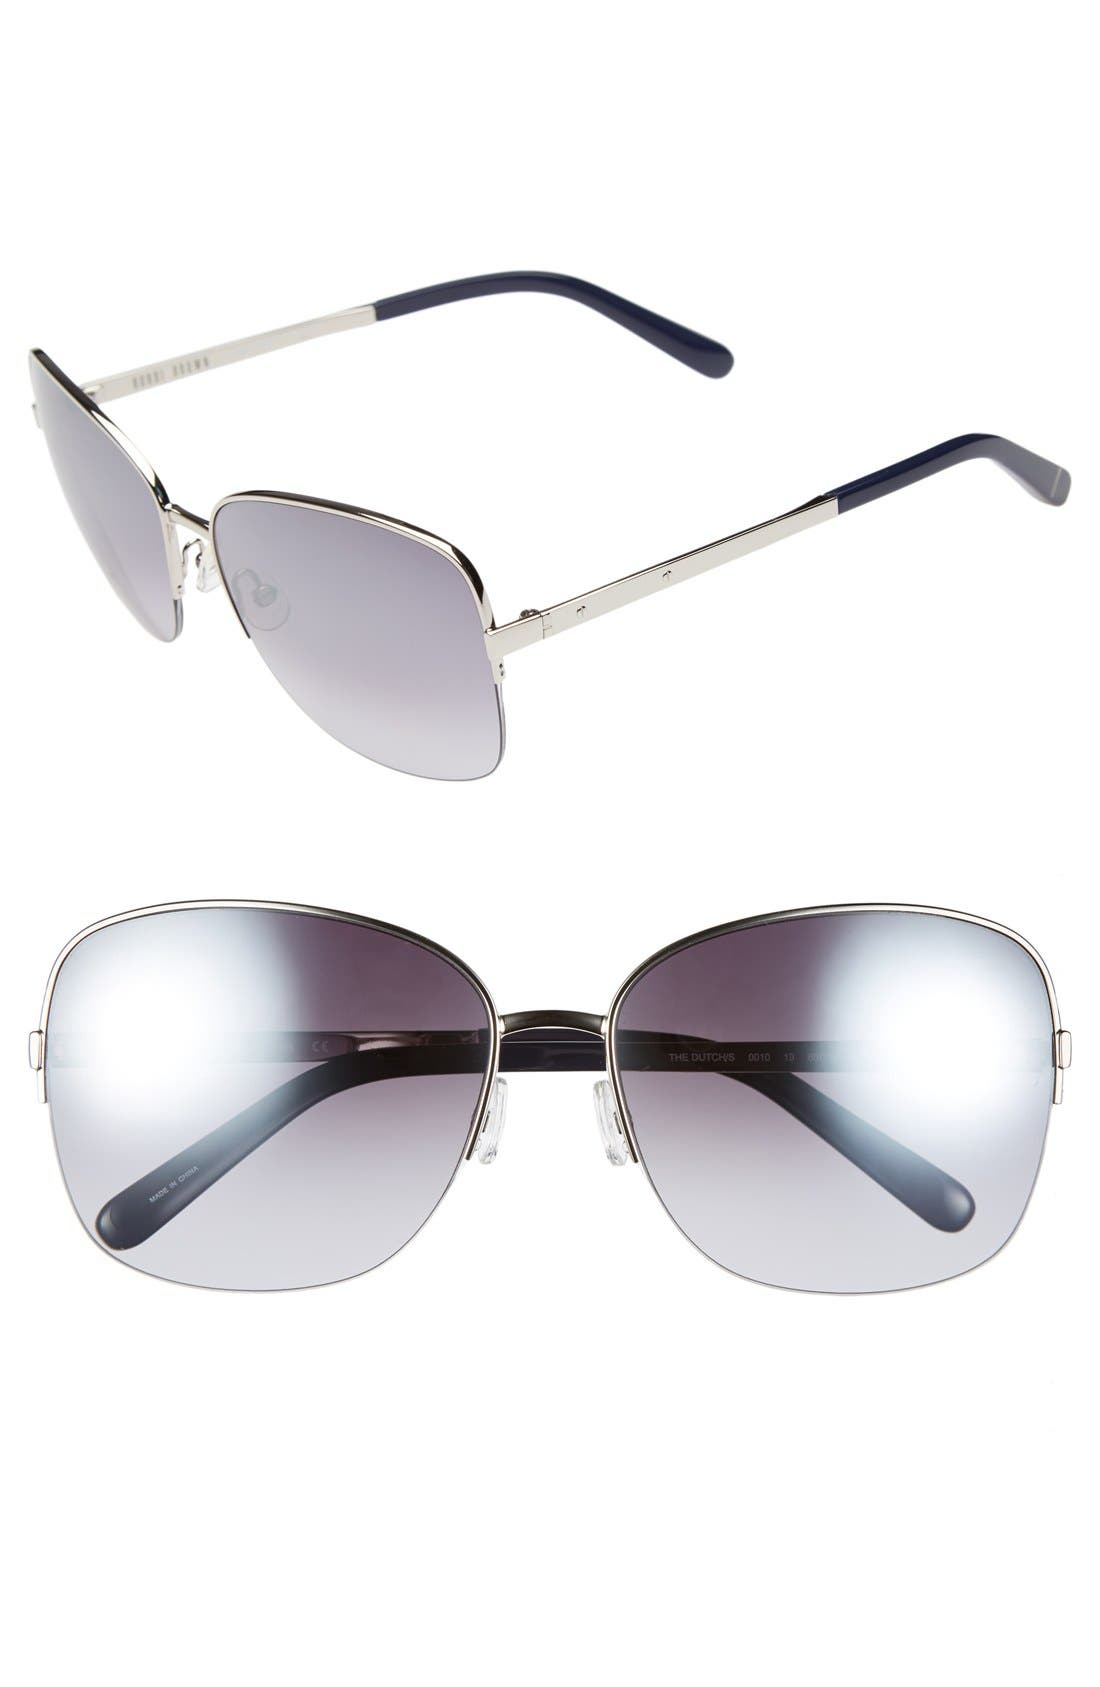 Main Image - Bobbi Brown 60mm Semi-Rimless Sunglasses